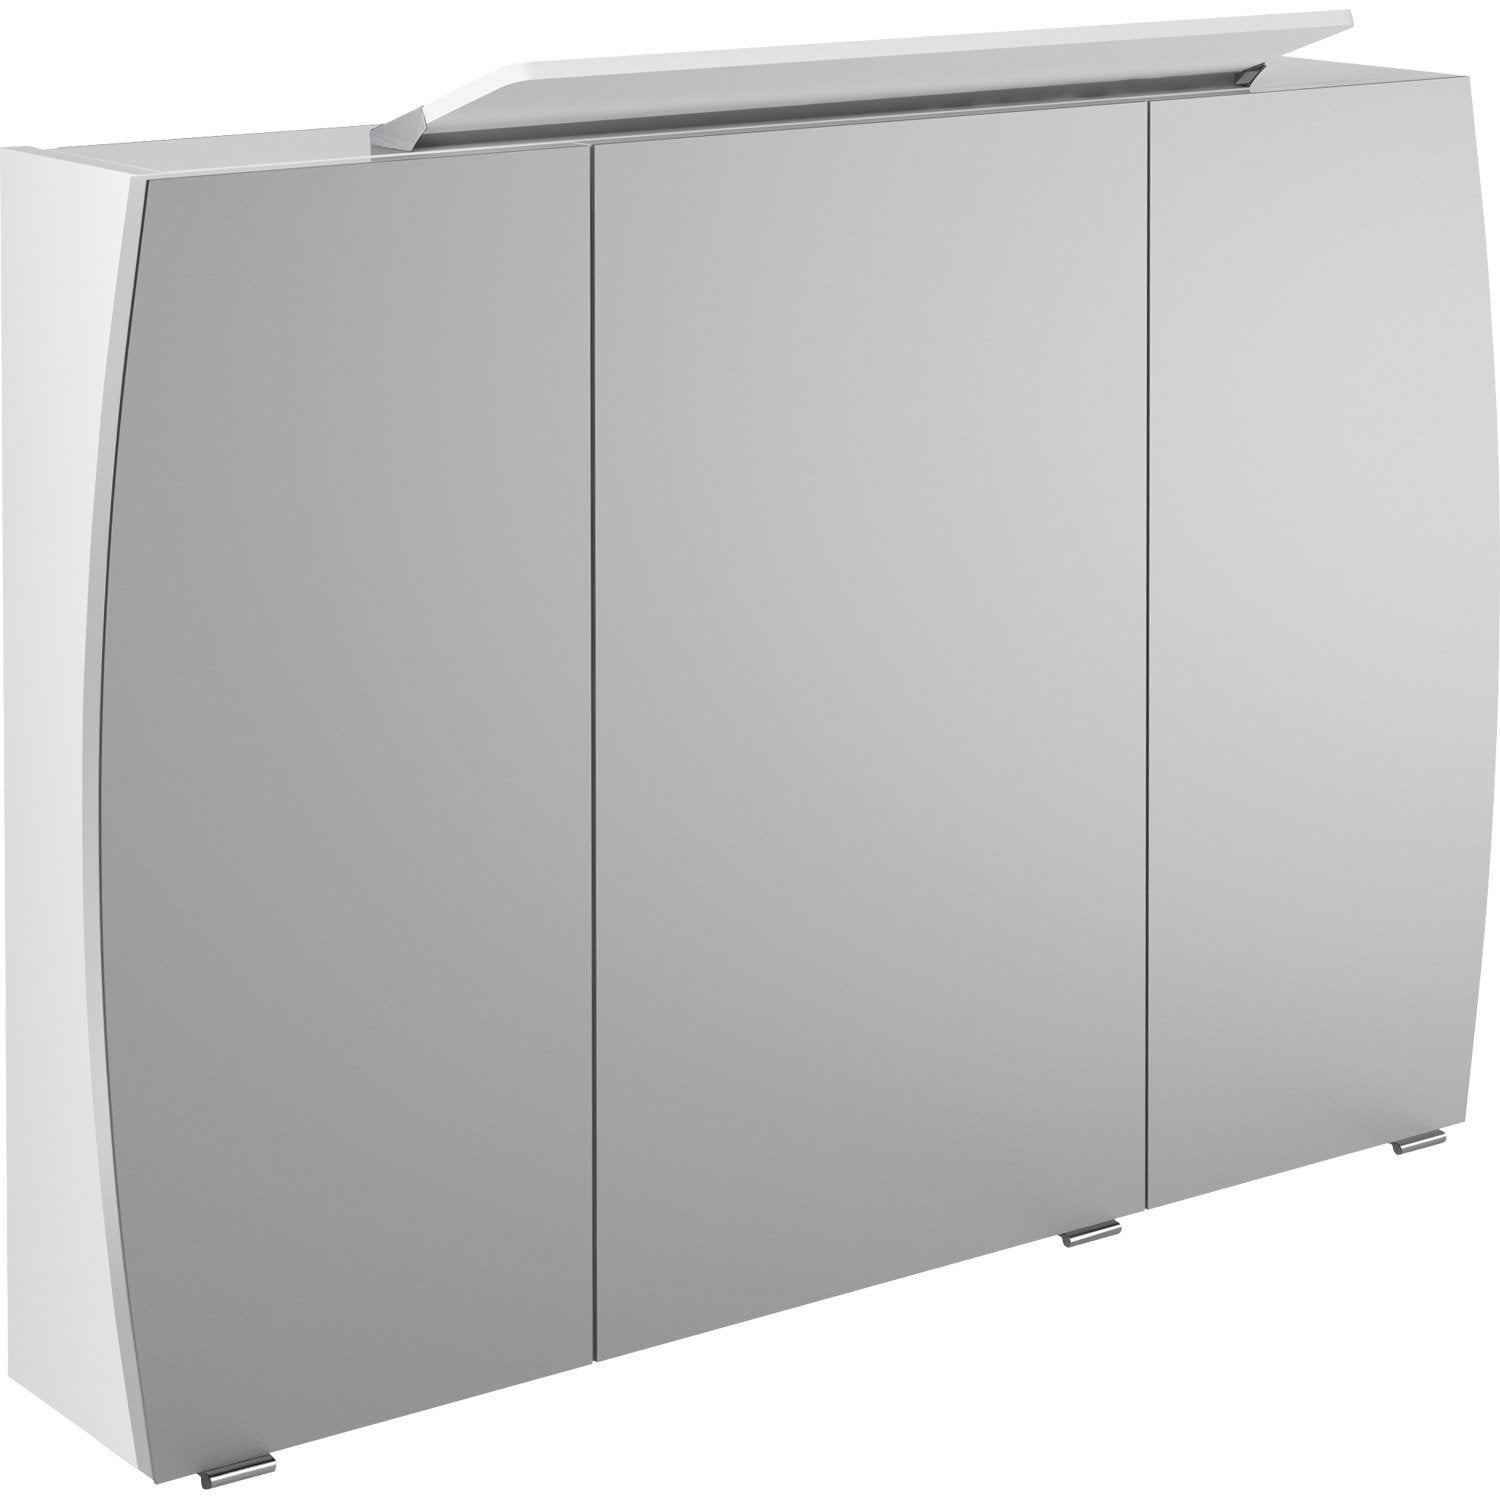 armoire de toilette lumineuse l 100 cm blanc image. Black Bedroom Furniture Sets. Home Design Ideas